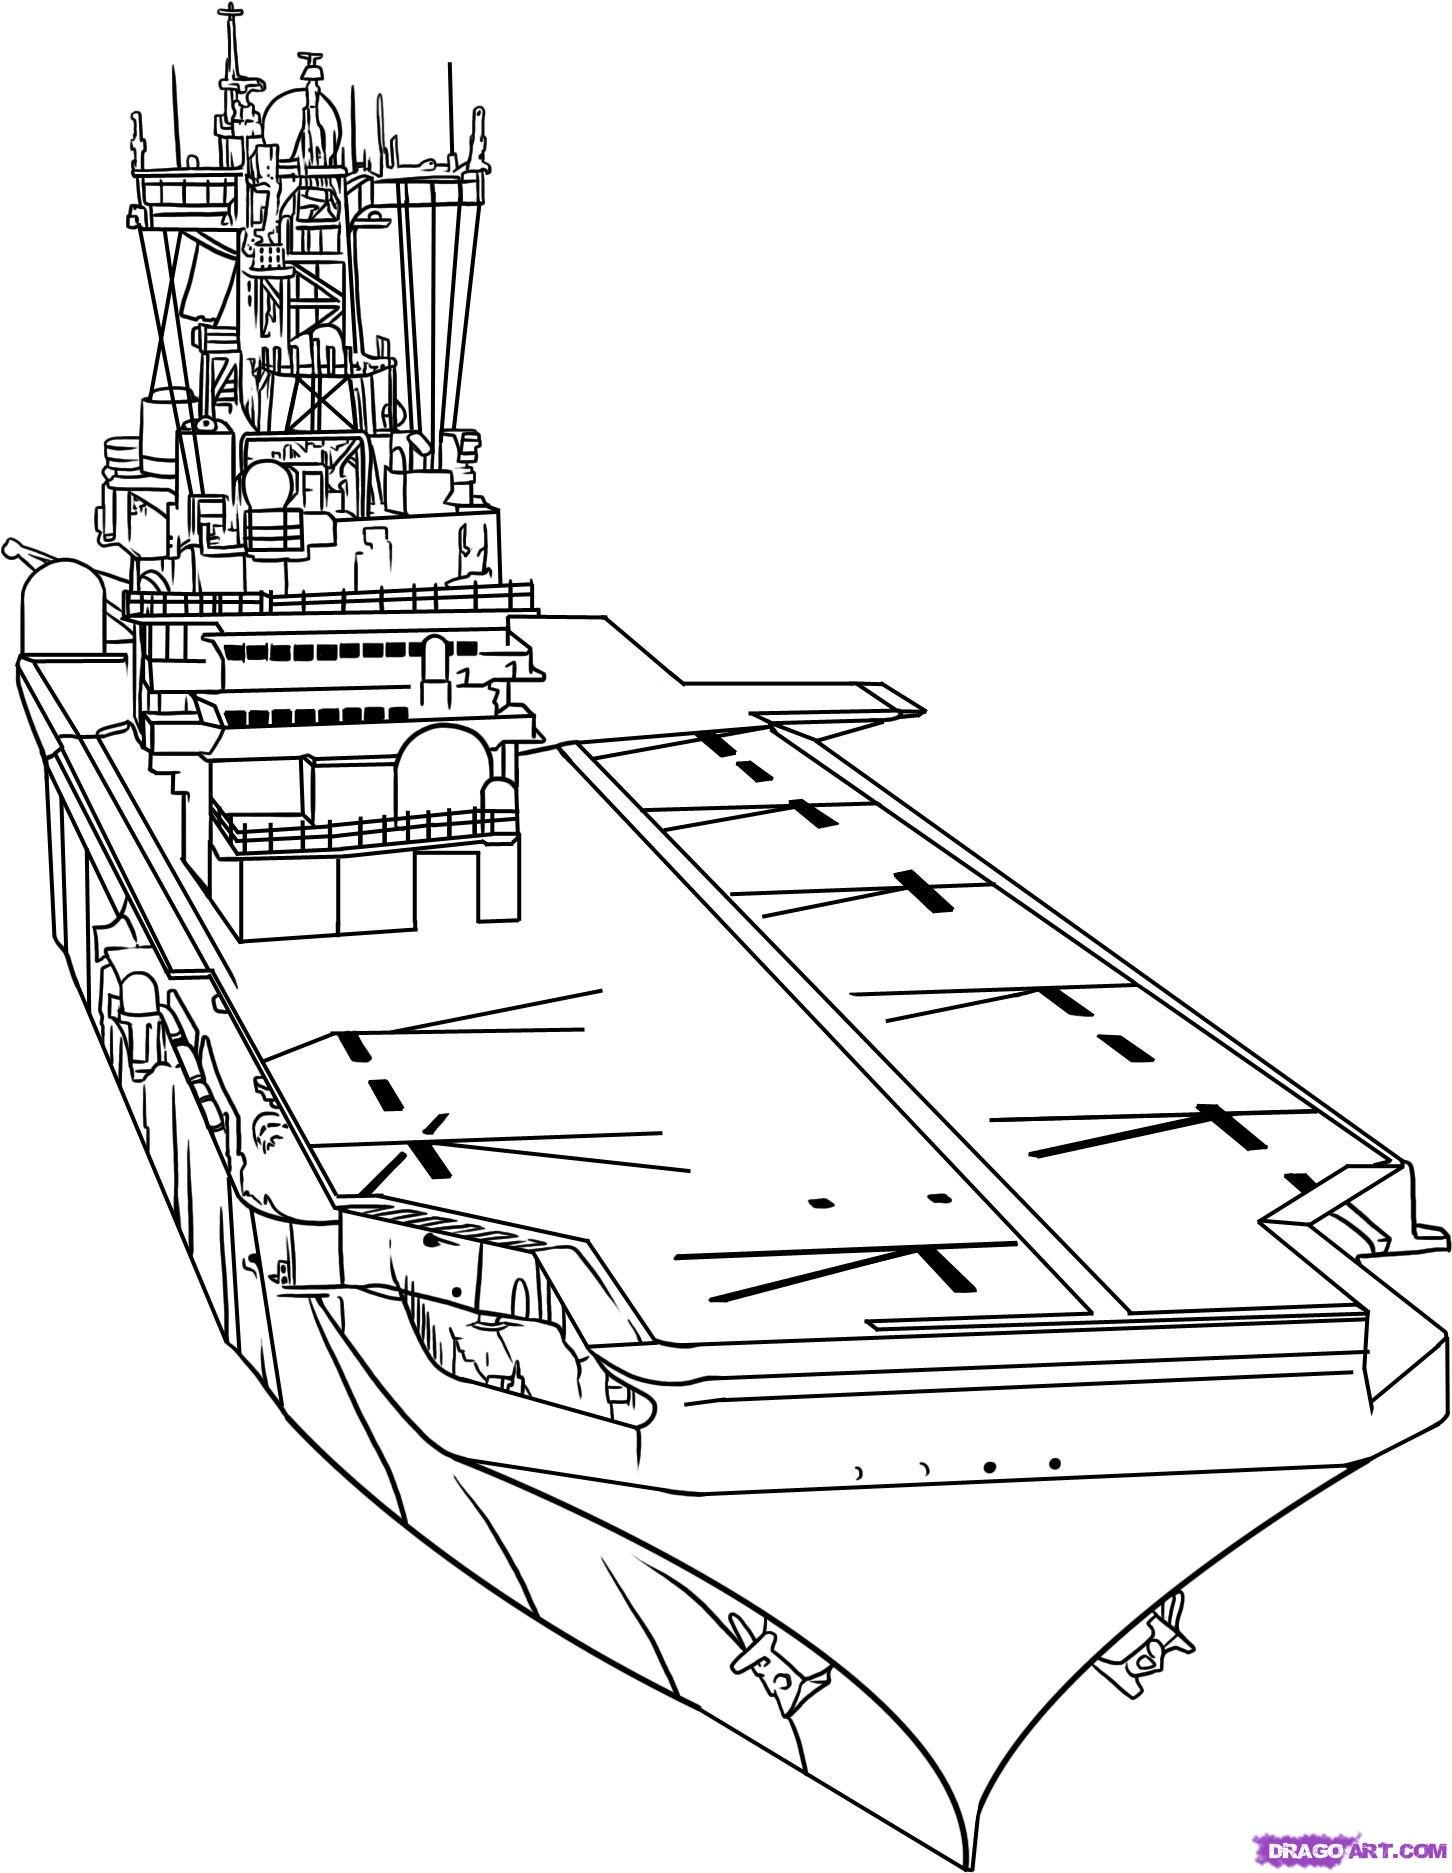 1452x1873 Aircraft Carrier Drawing Sunglassesray